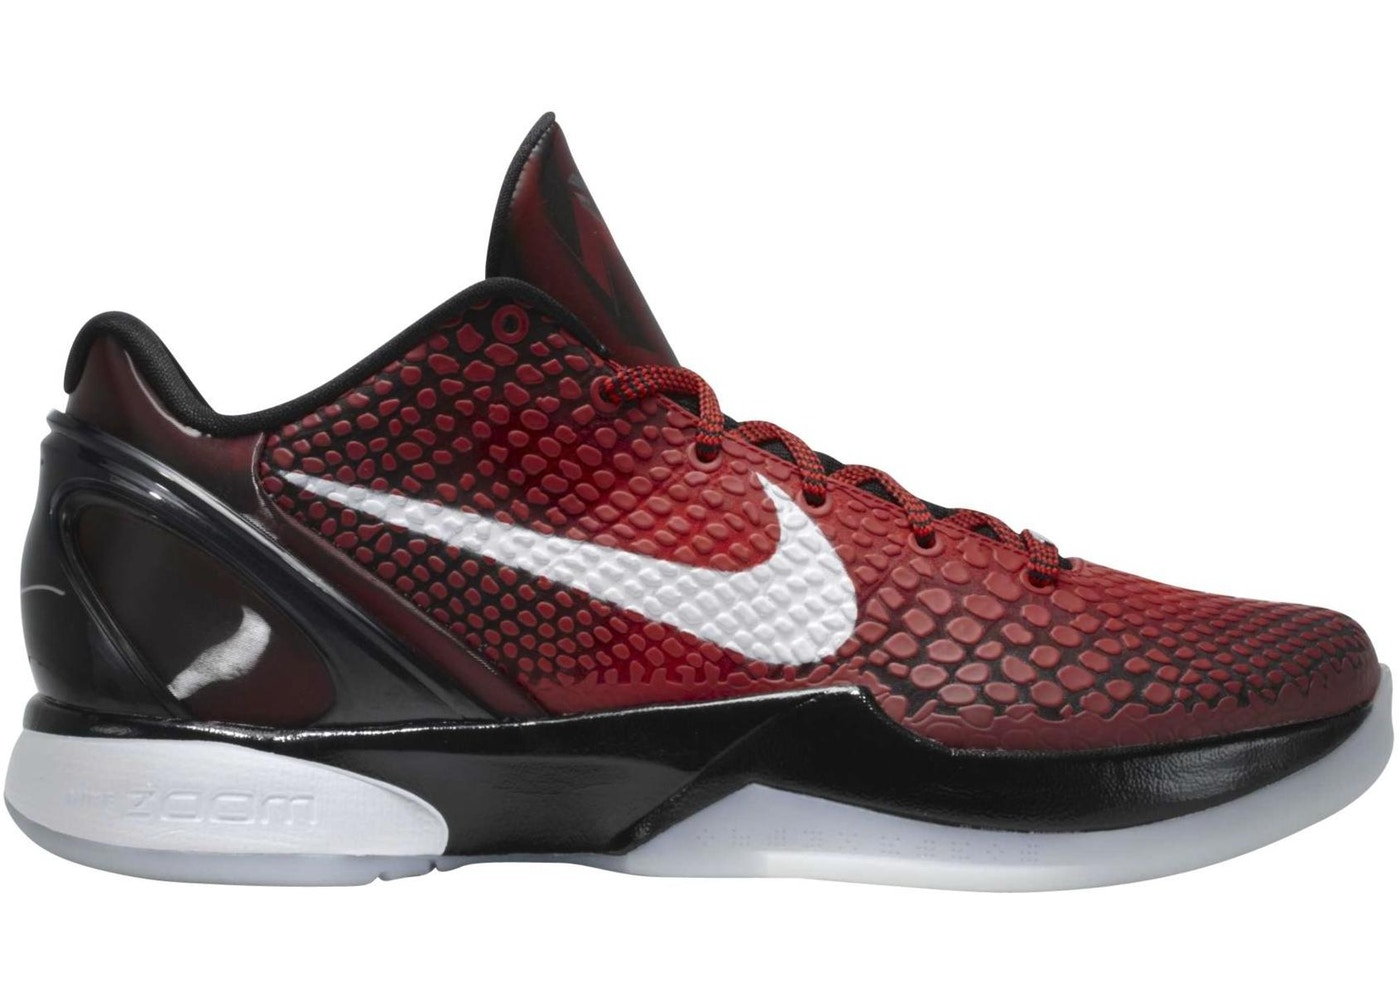 timeless design 1c844 49375 Kobe 6 ASG West Challenge Red - 448693-600